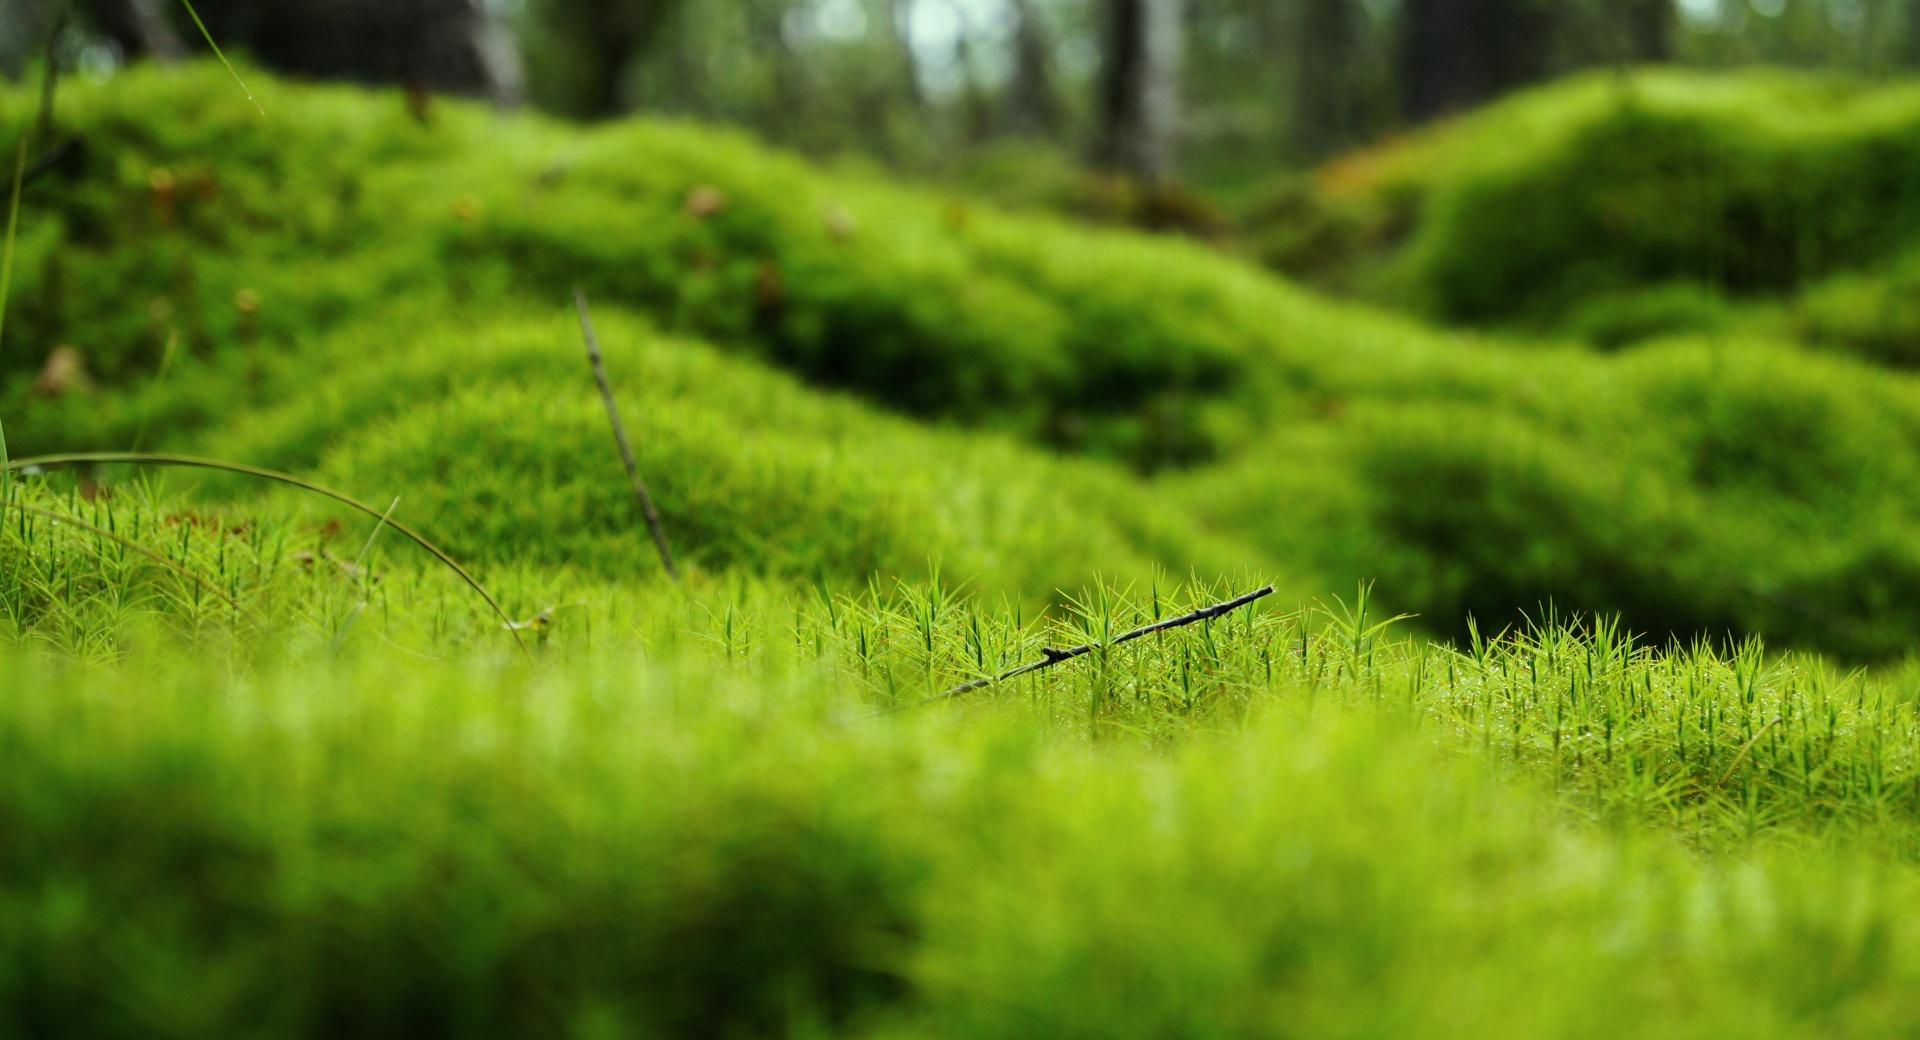 Green Moss wallpapers HD quality